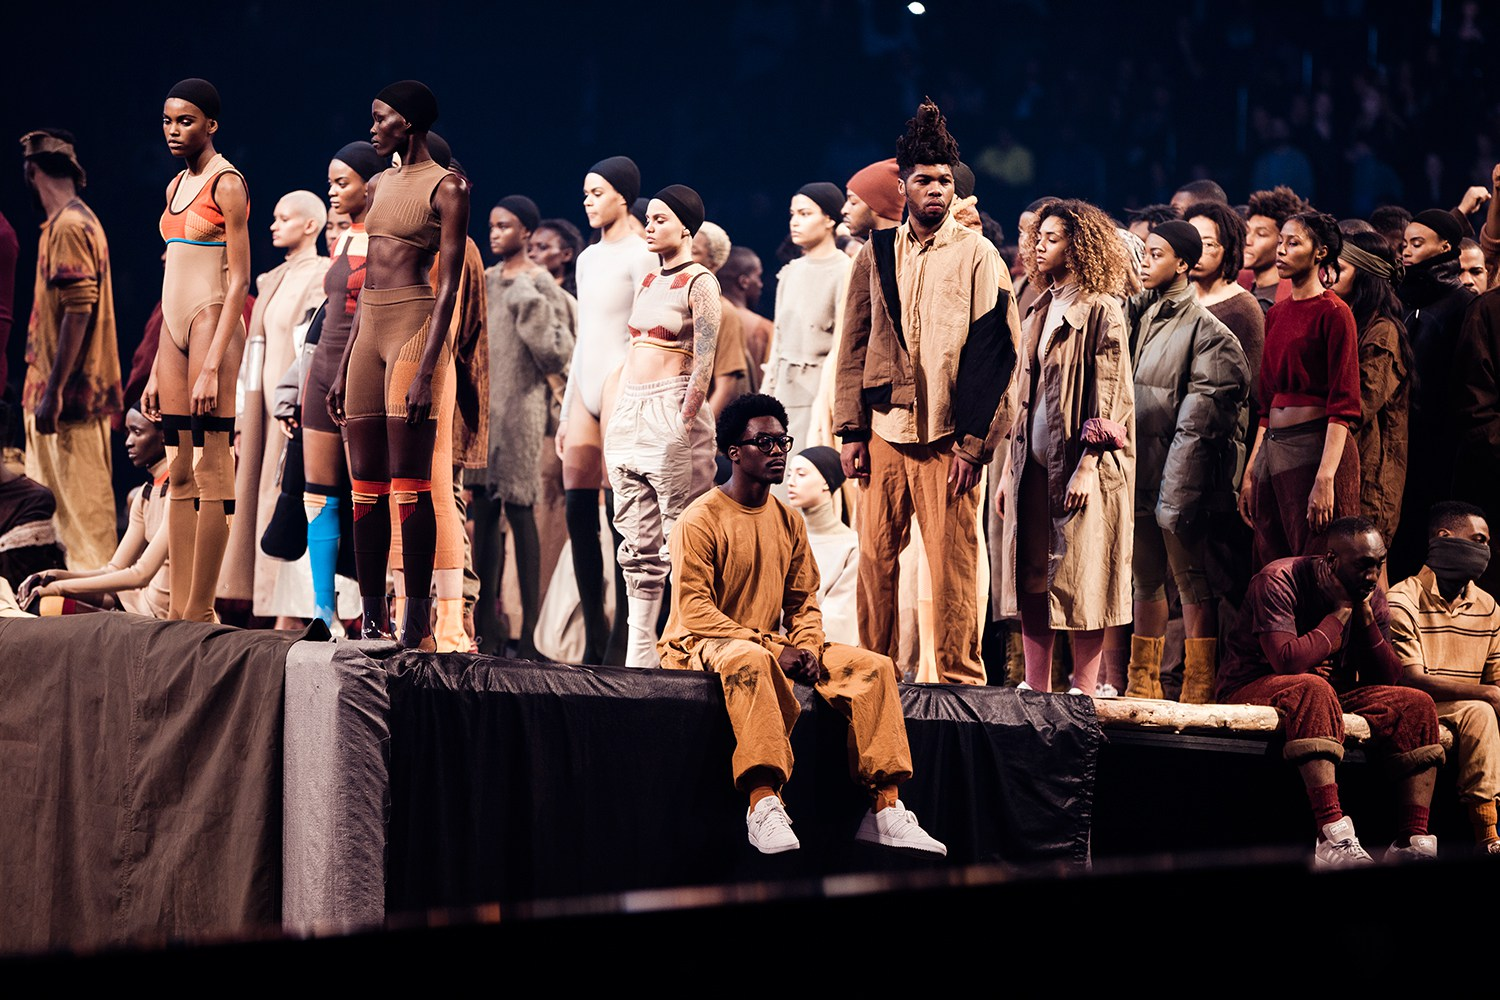 Kanye West Apresenta Novo Álbum E Yeezy Season 3 No Madison Square Garden